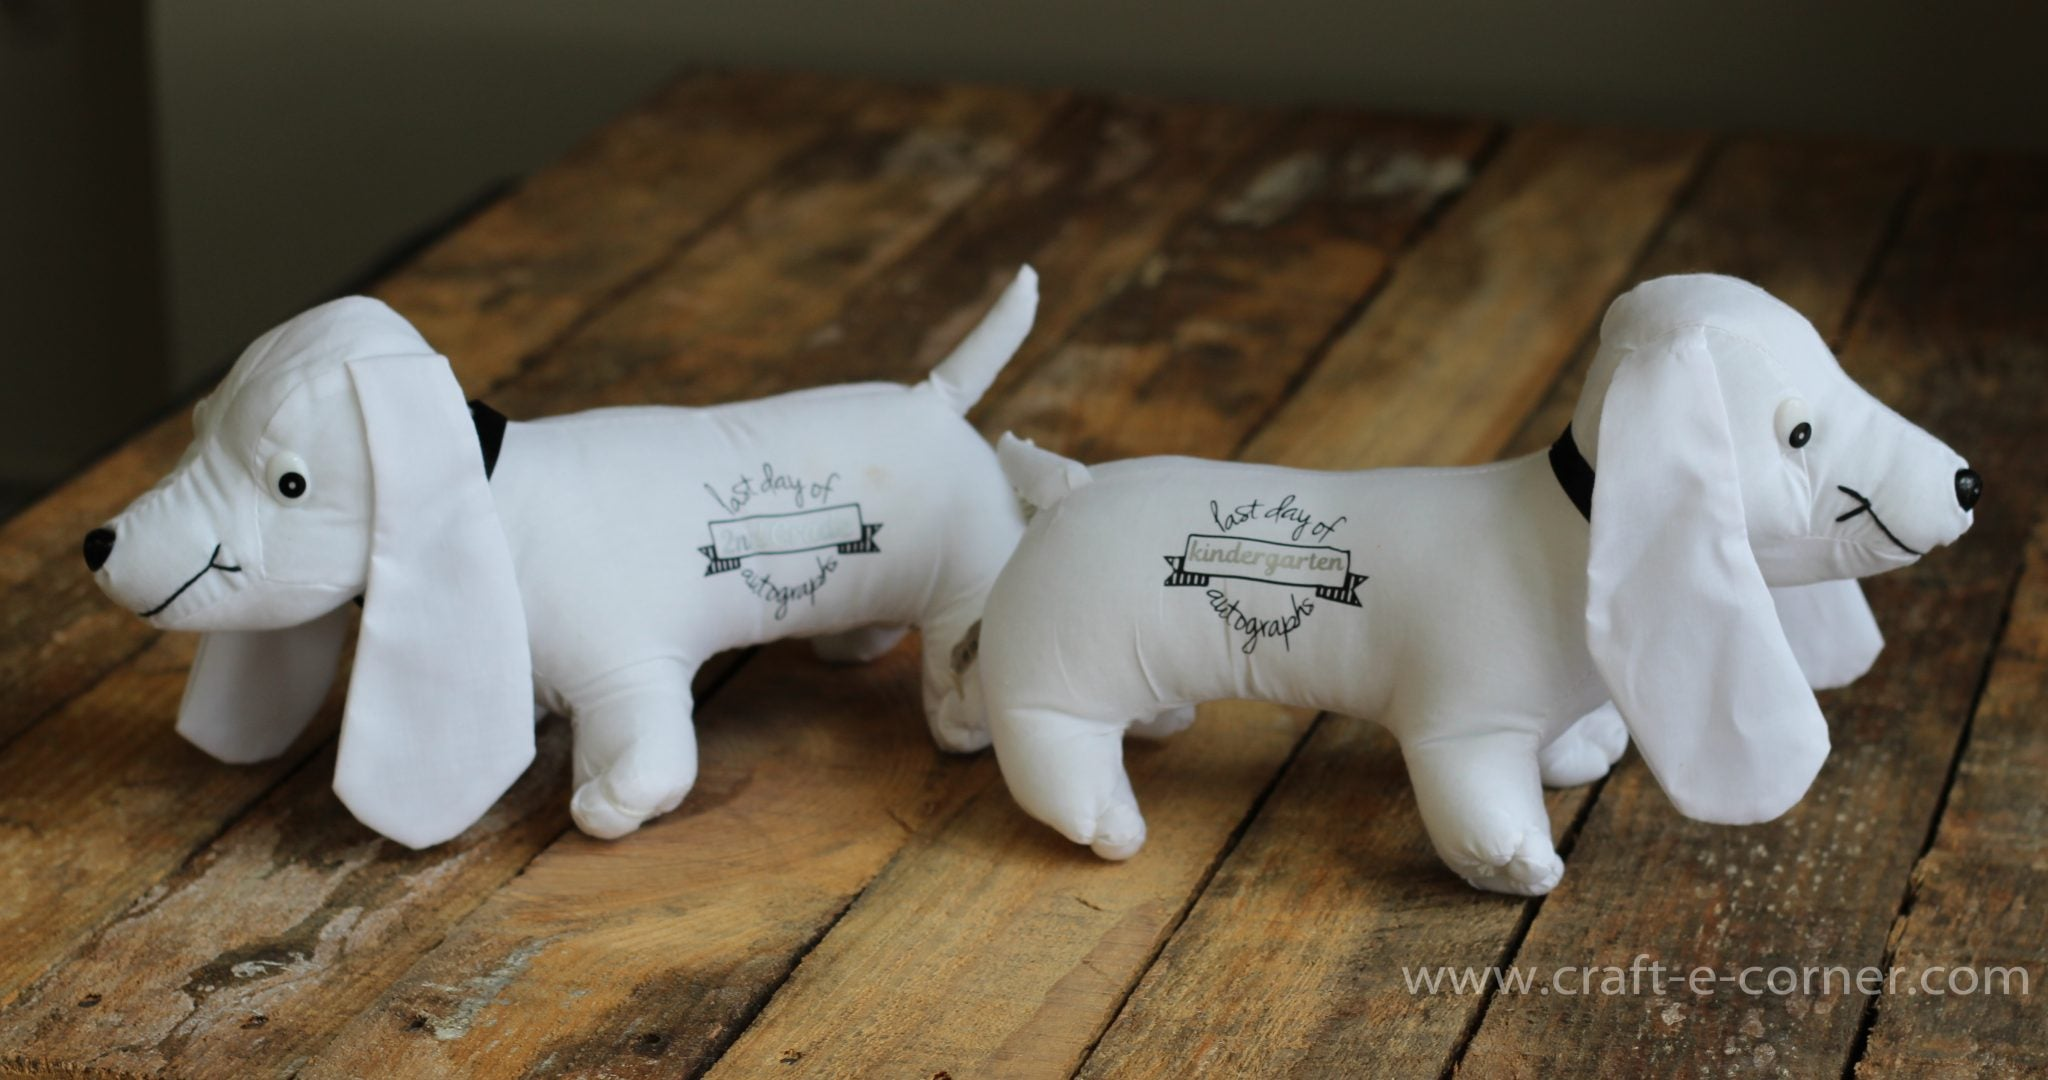 Learn how to heat press a stuffed animal! These cut dogs are perfect for the last day of school autographs!